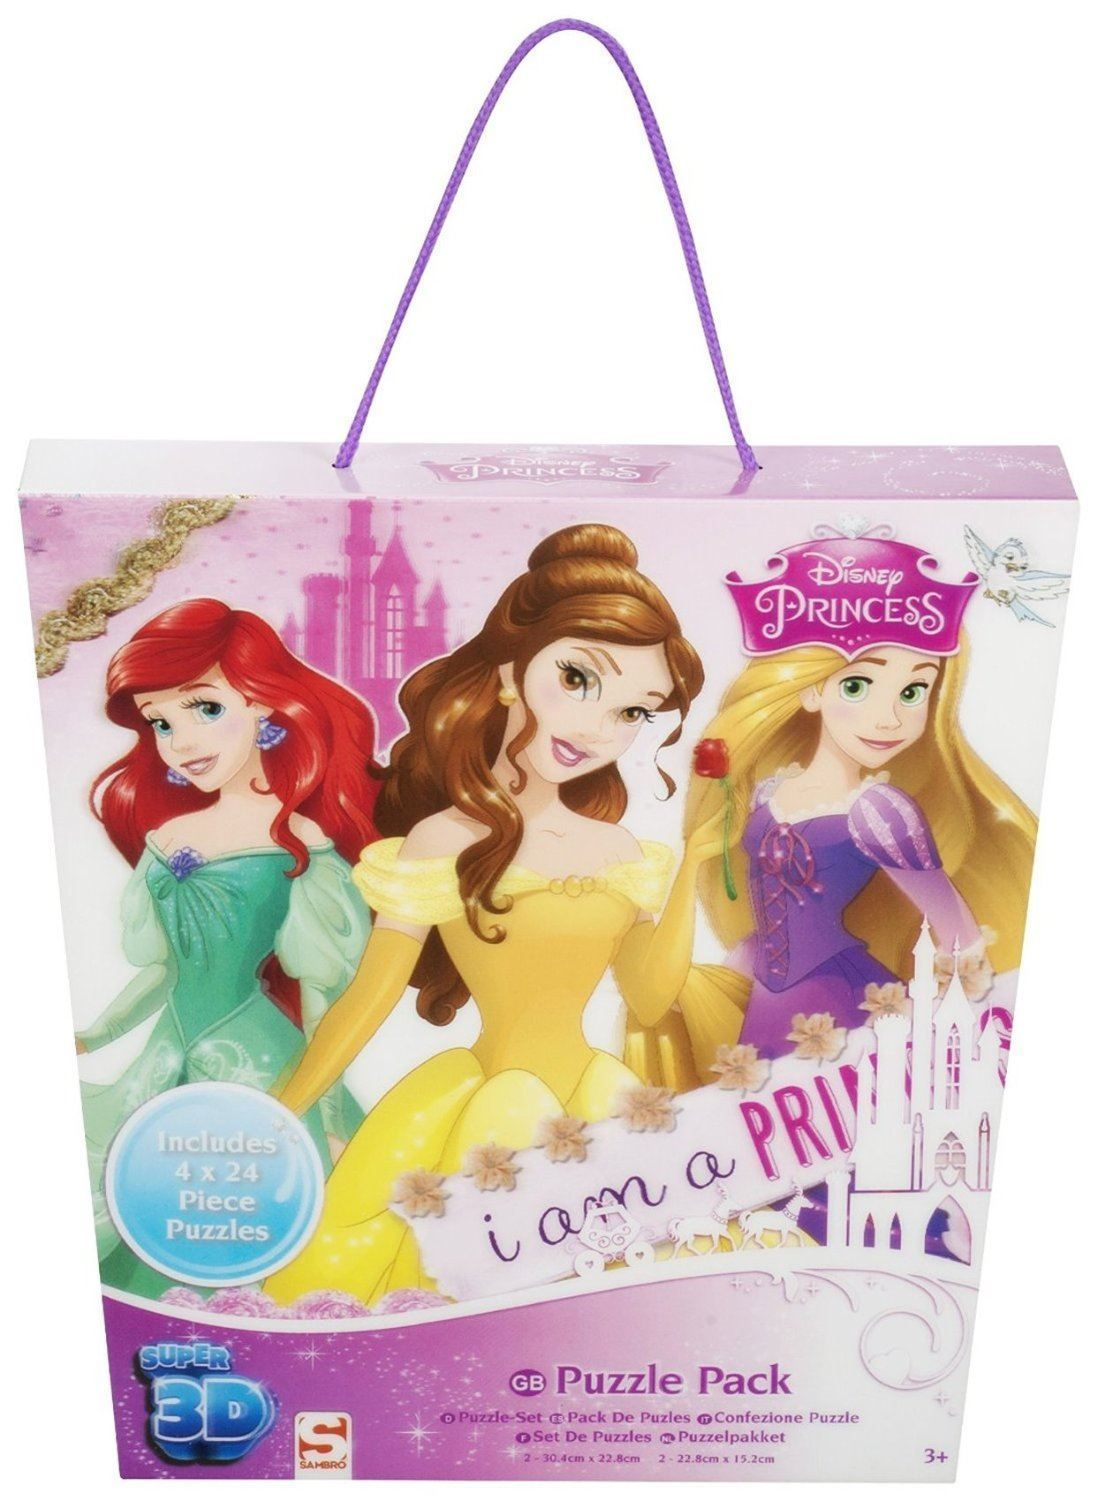 Disney Princess 4 Pack Super 3D Puzzle